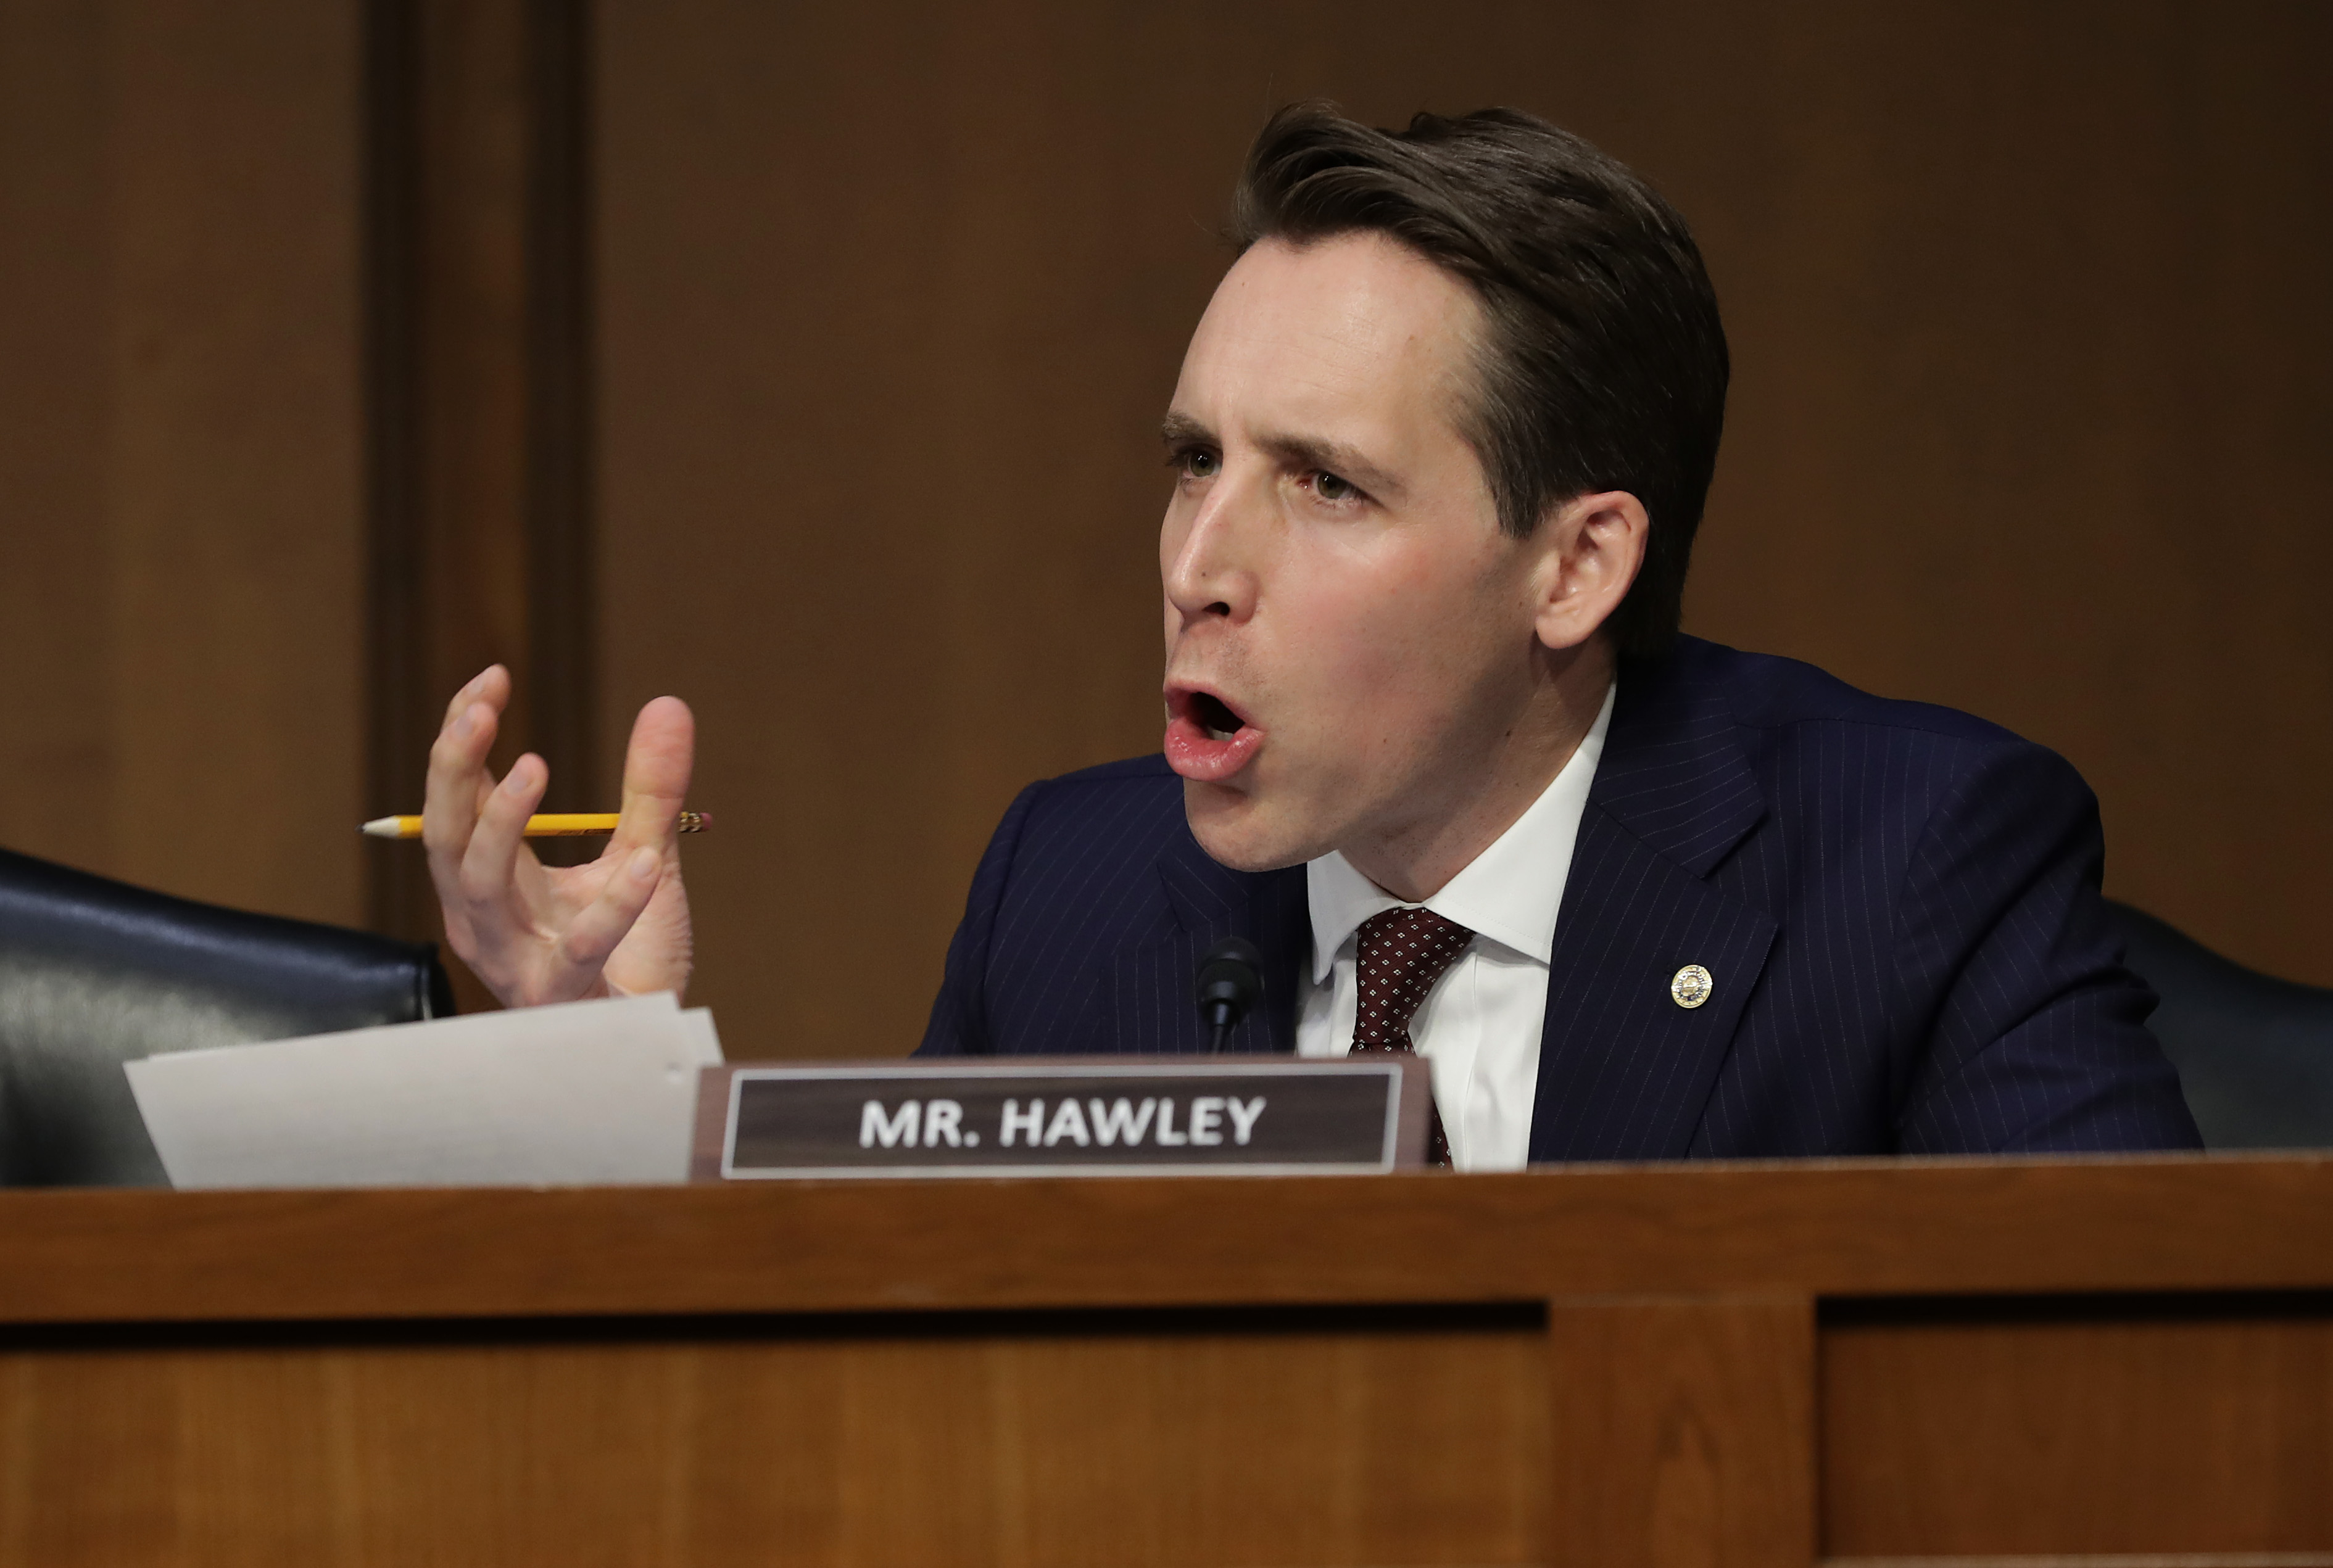 Sen. Josh Hawley (R-MO) questions William Barr during his confirmation hearing on January 15, 2019. (Chip Somodevilla/Getty Images)